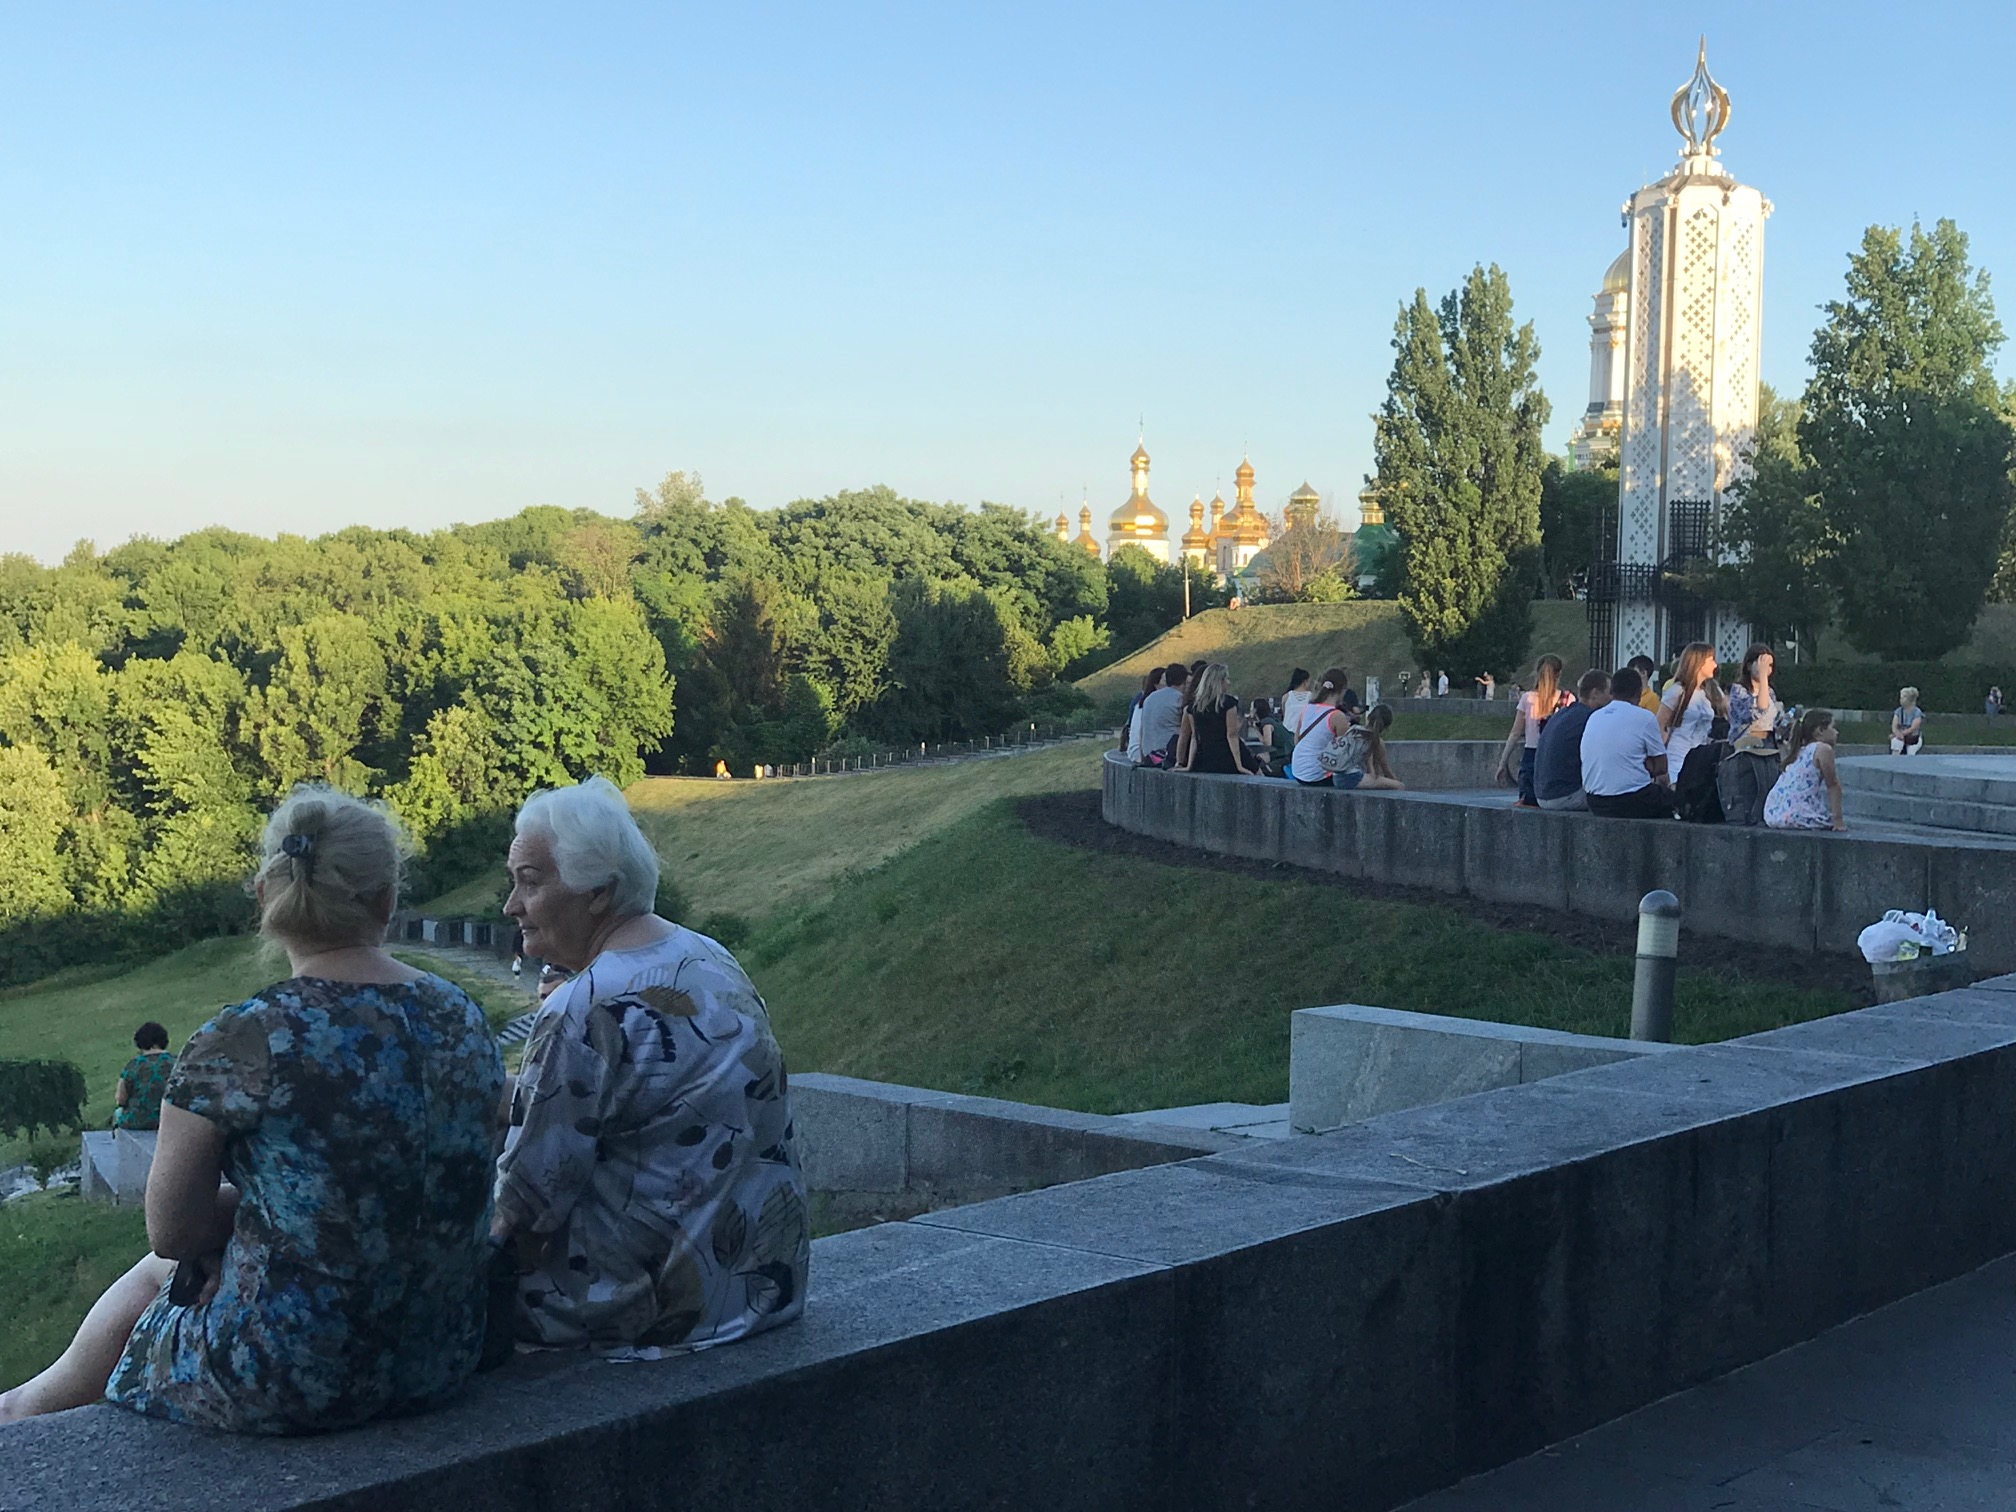 People are chilling in the park. Kyiv, Ukraine